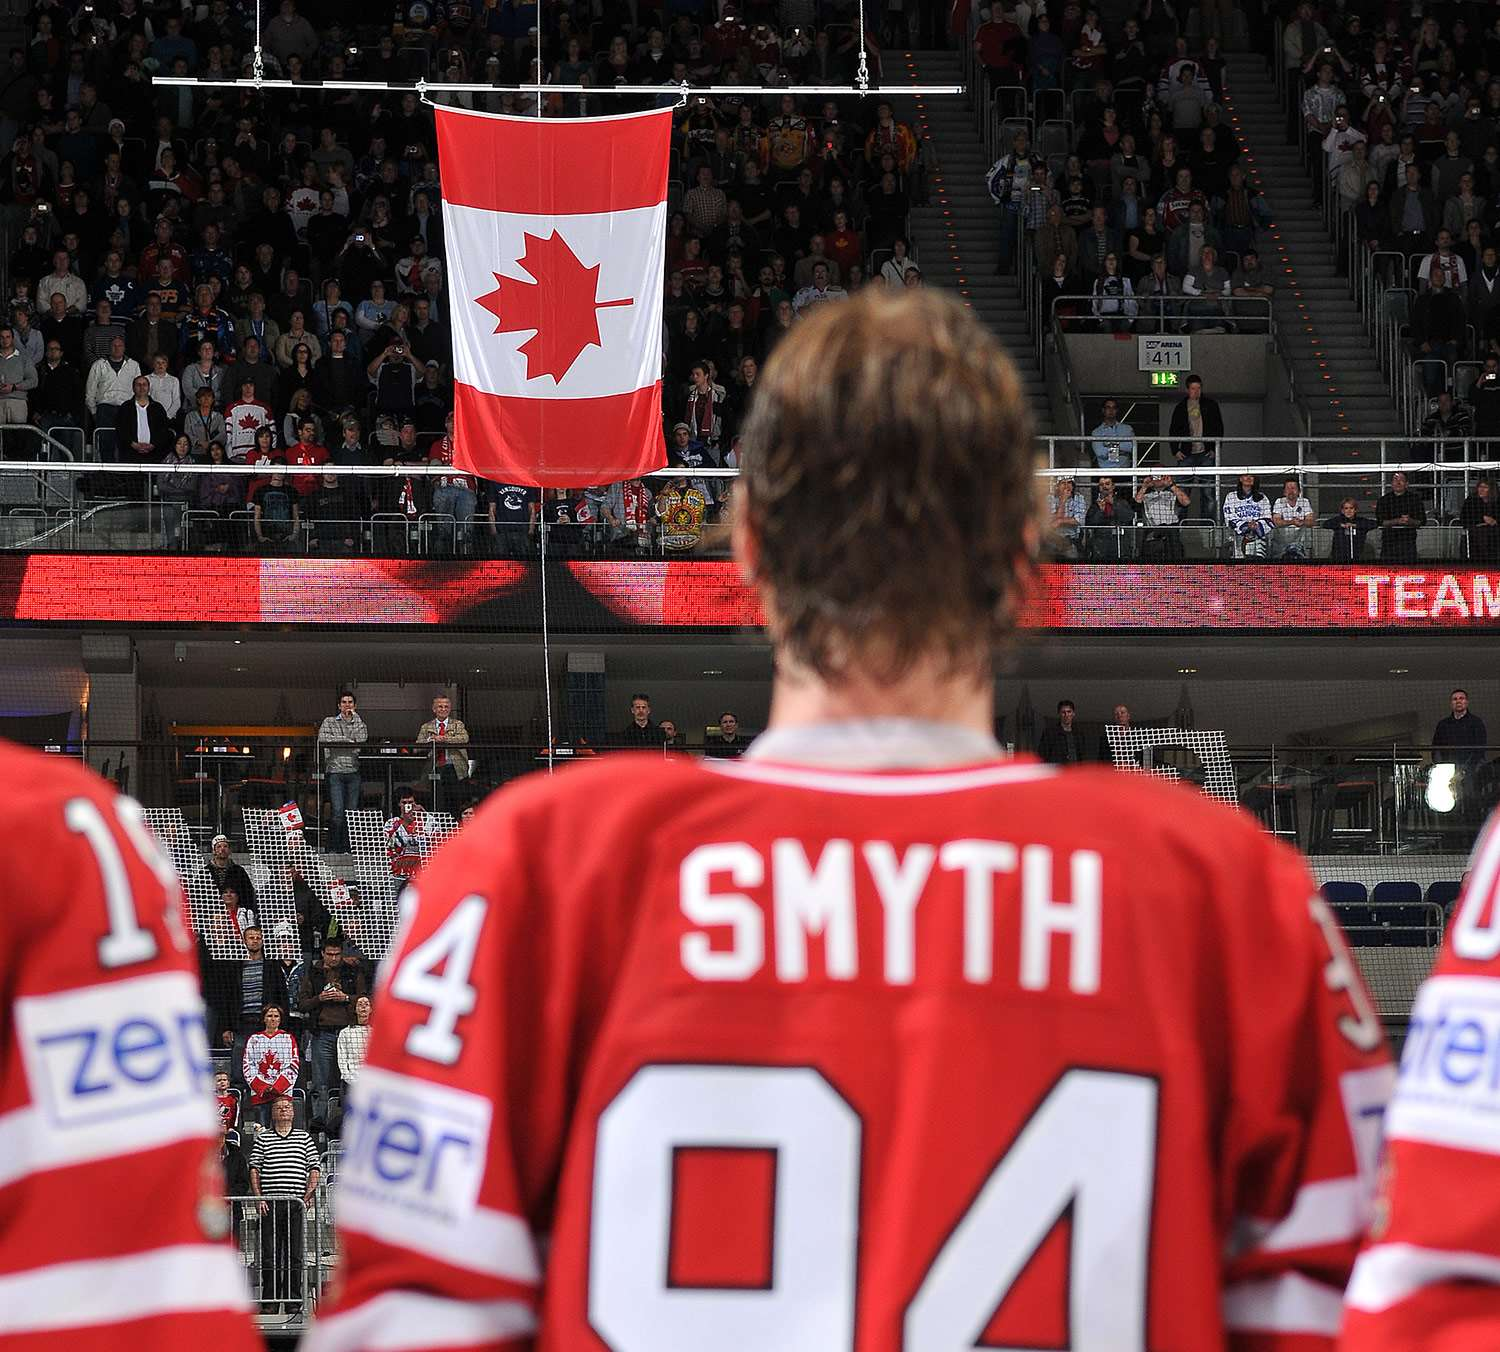 2010 mwc smyth back flag 1500